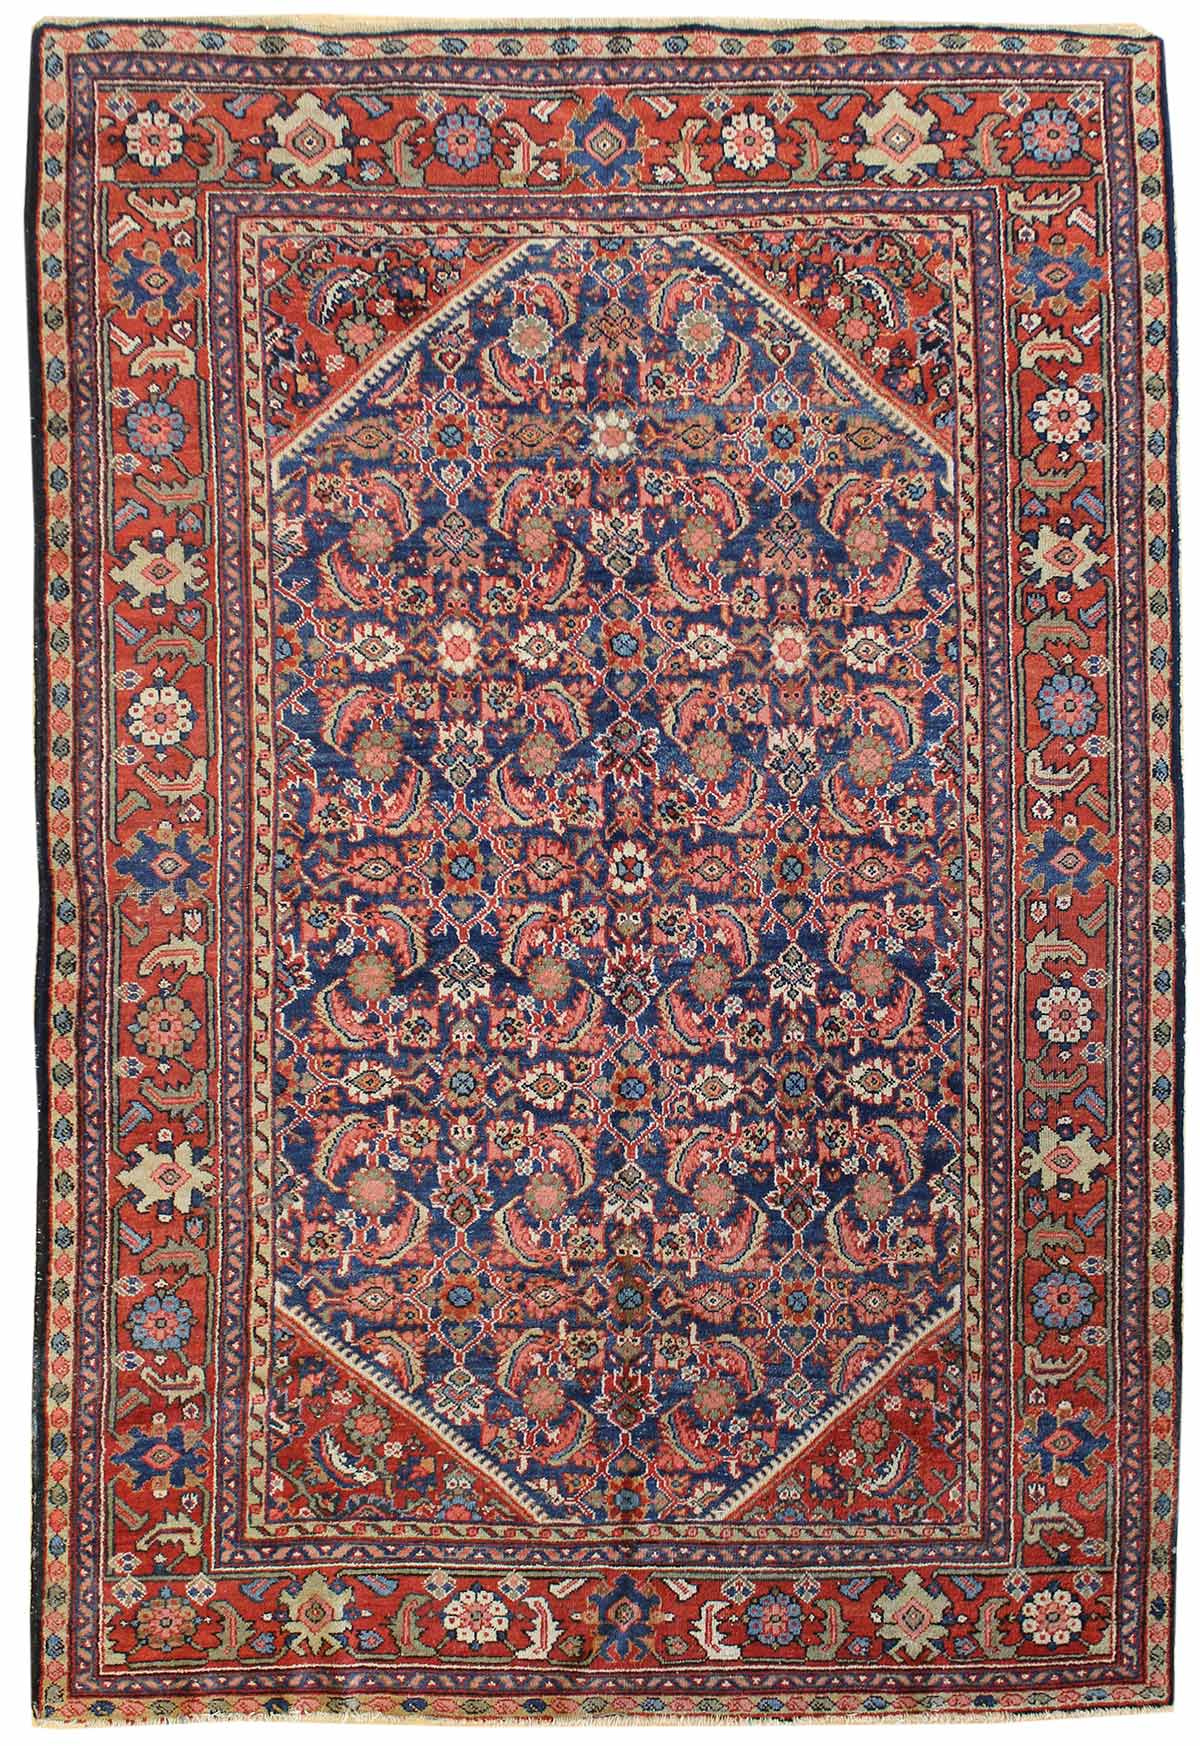 Antique Mahal Handwoven Traditional Rug